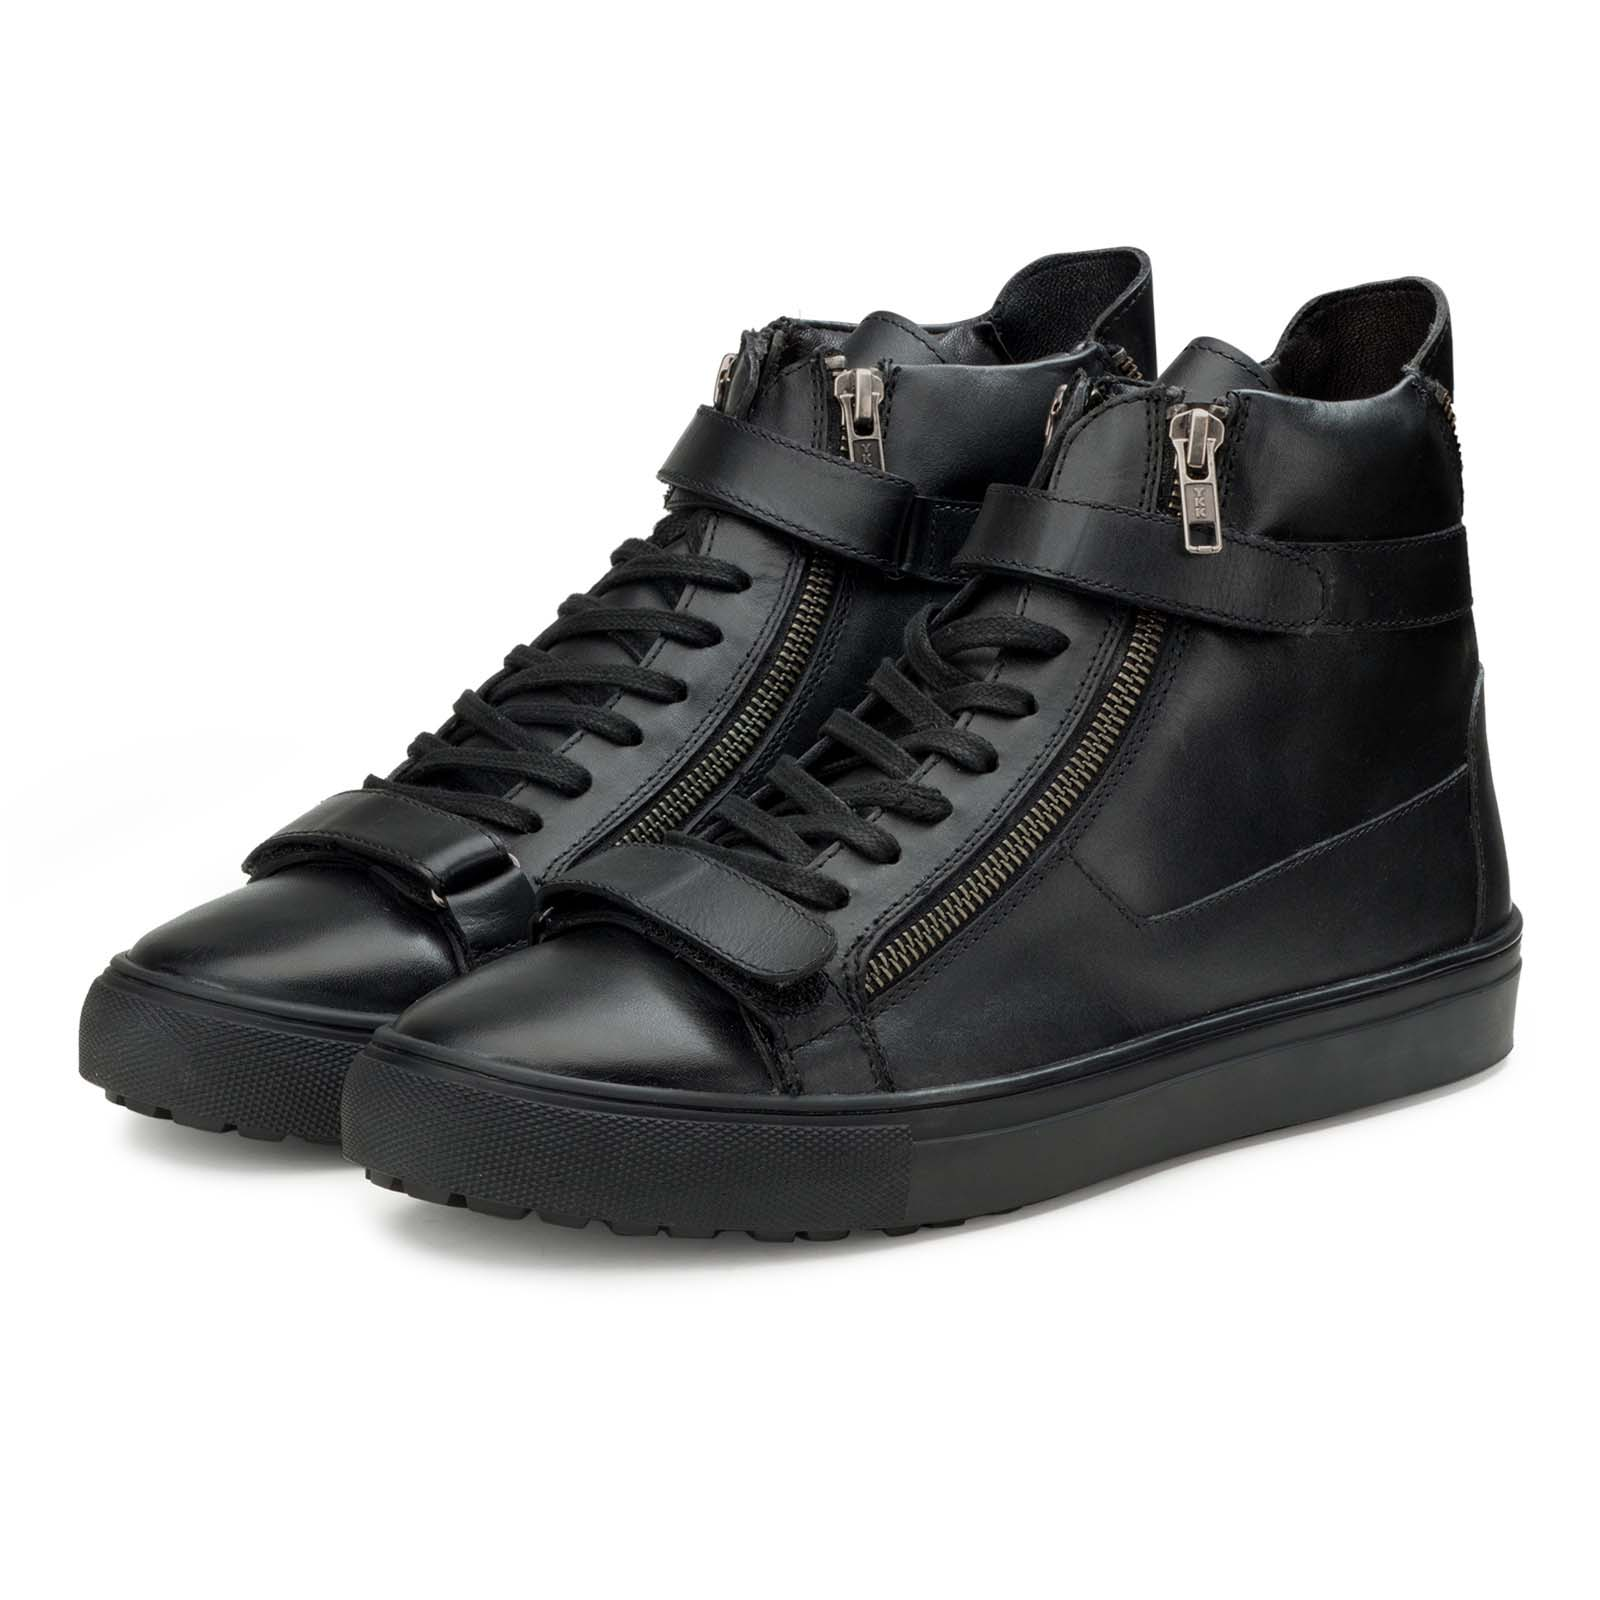 High-Top Black Leather Sneakers